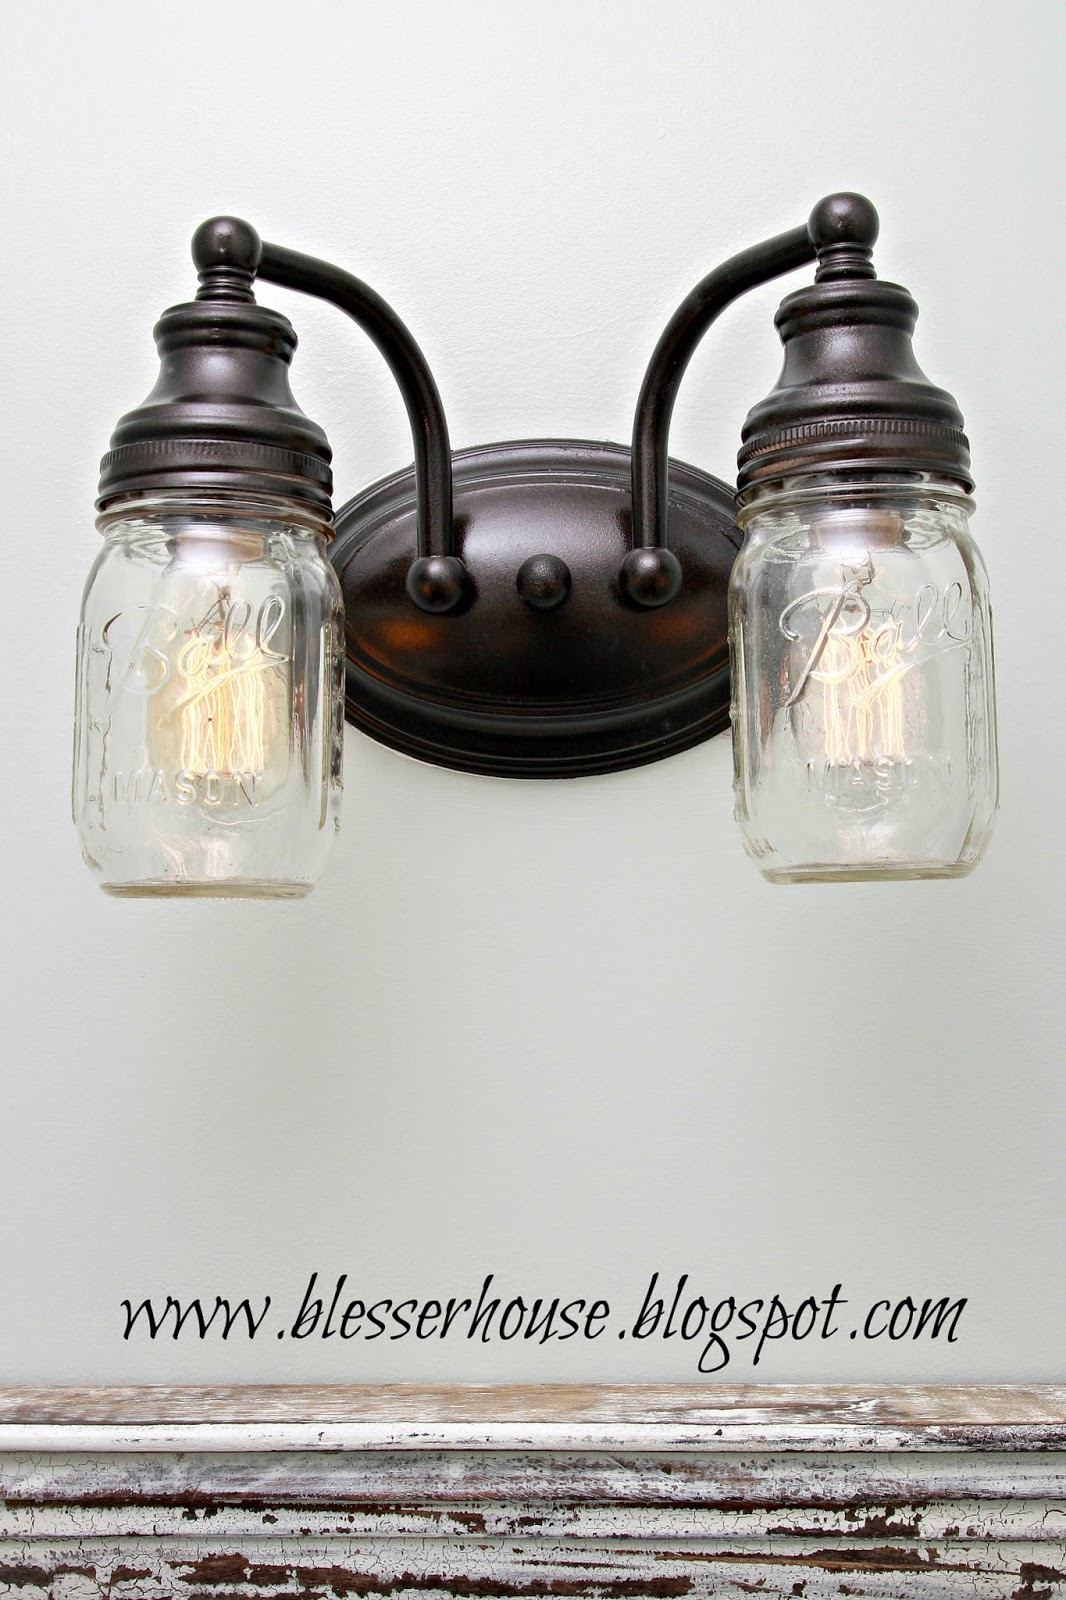 DIY Mason Jar Vanity Light - Bless er House